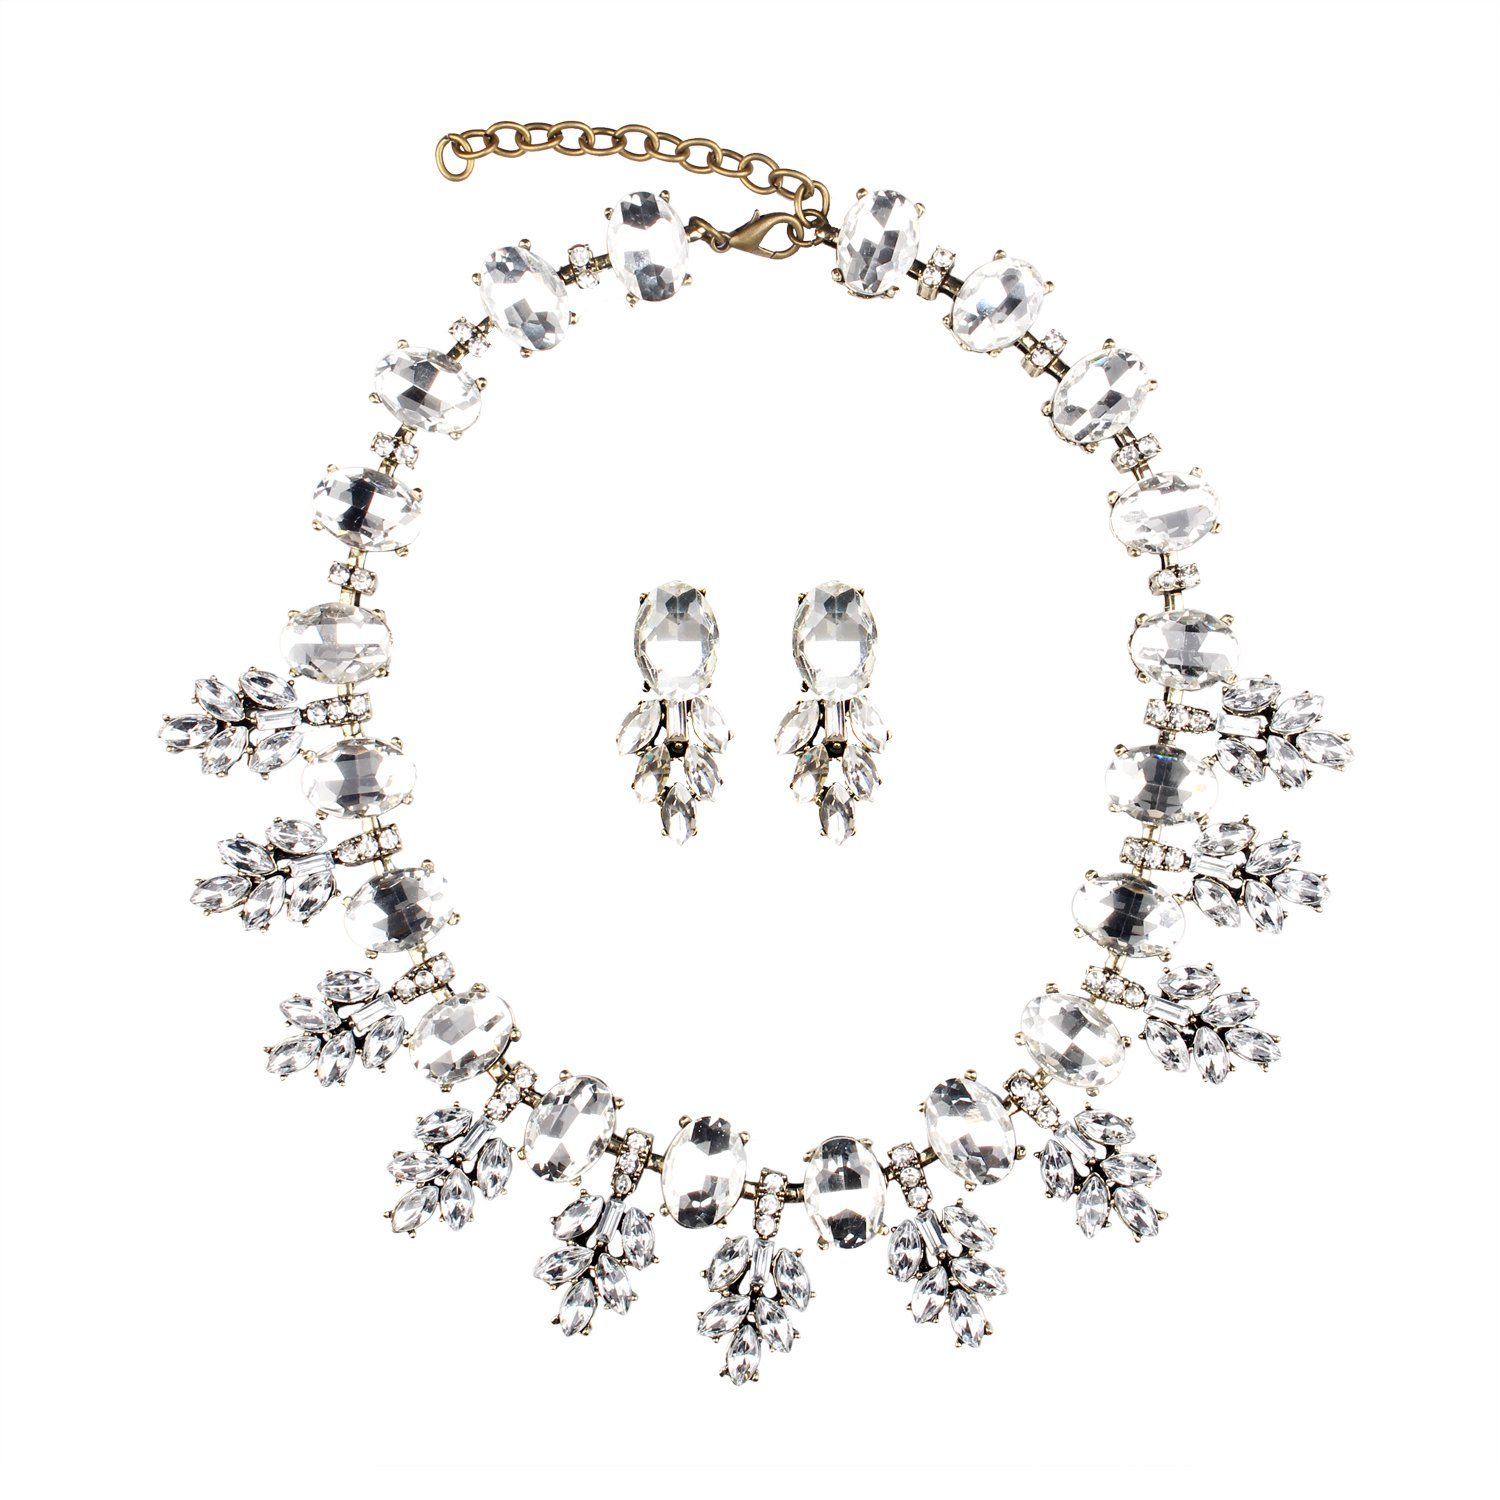 Hamer Collar Costume jewelry Crystal Choker Pendant Statement Chain Charm Necklace and Earrings Sets Women (9#)